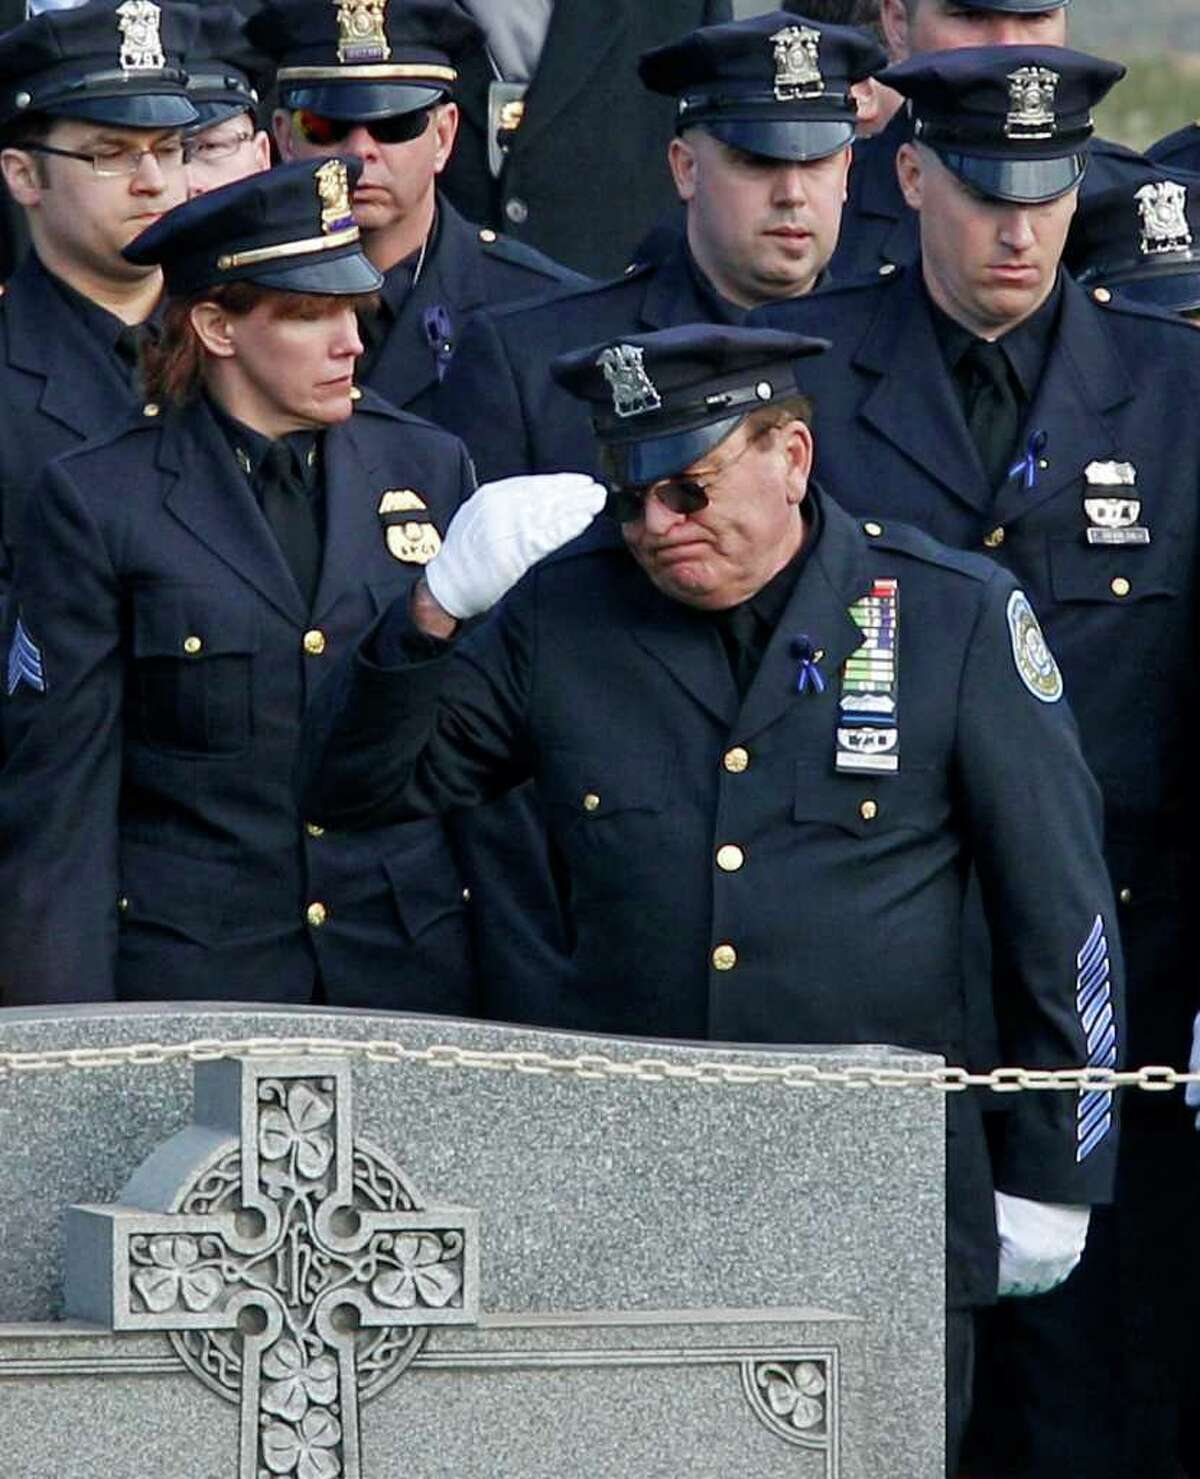 A fellow officer gives a farewell salute to his slain colleague at the gravesite of Poughkeepsie police Detective John Falcone at Brooklyn's Holy Cross Cemetery in New York, Thursday, Feb. 24, 2011. Falcone was gunned down as he helped rescue a 3-year-old girl. (AP Photo/Kathy Willens)